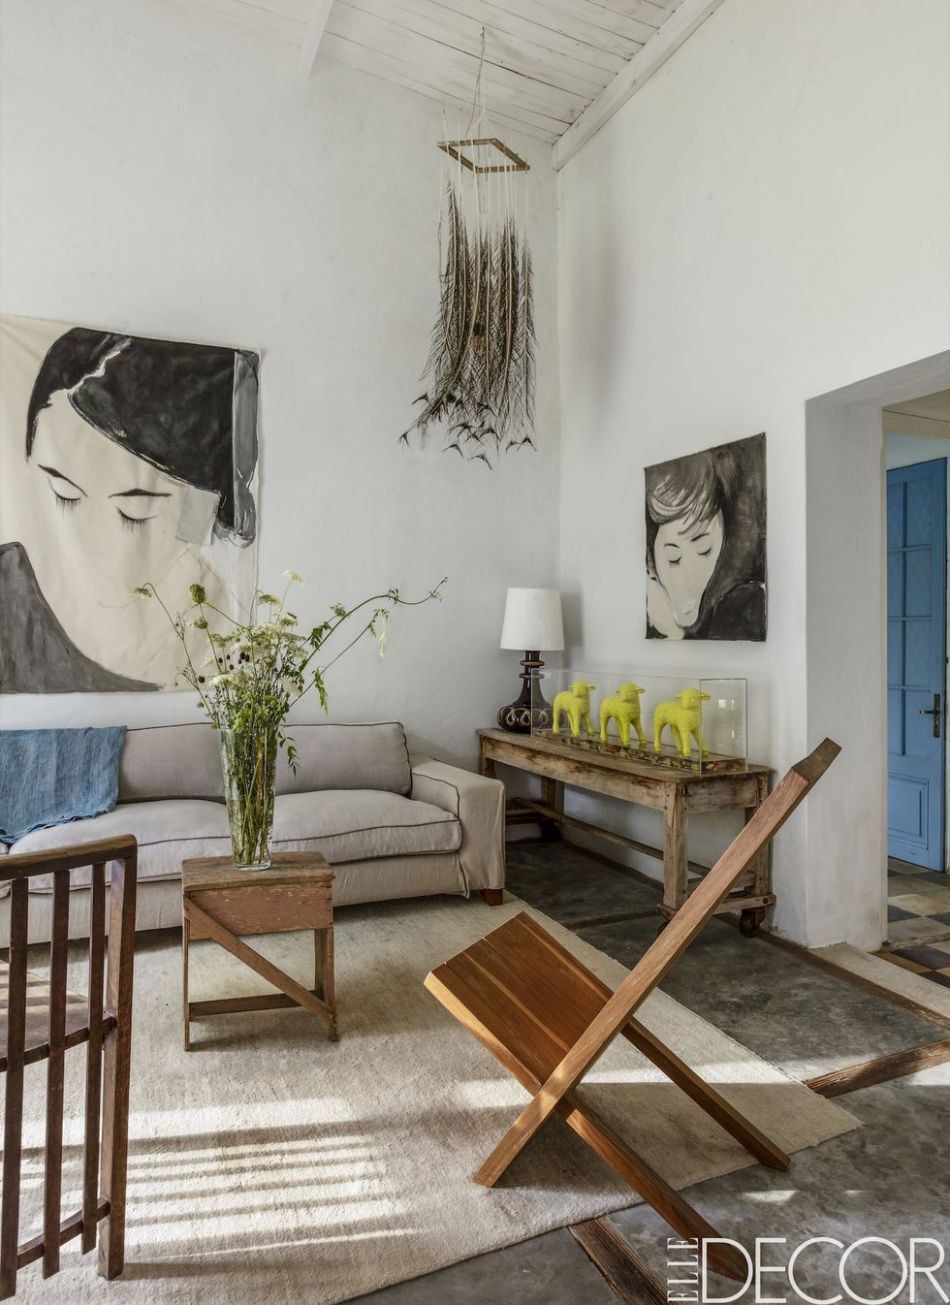 12 Best Wall Decor Ideas - How to Decorate a Large Wall